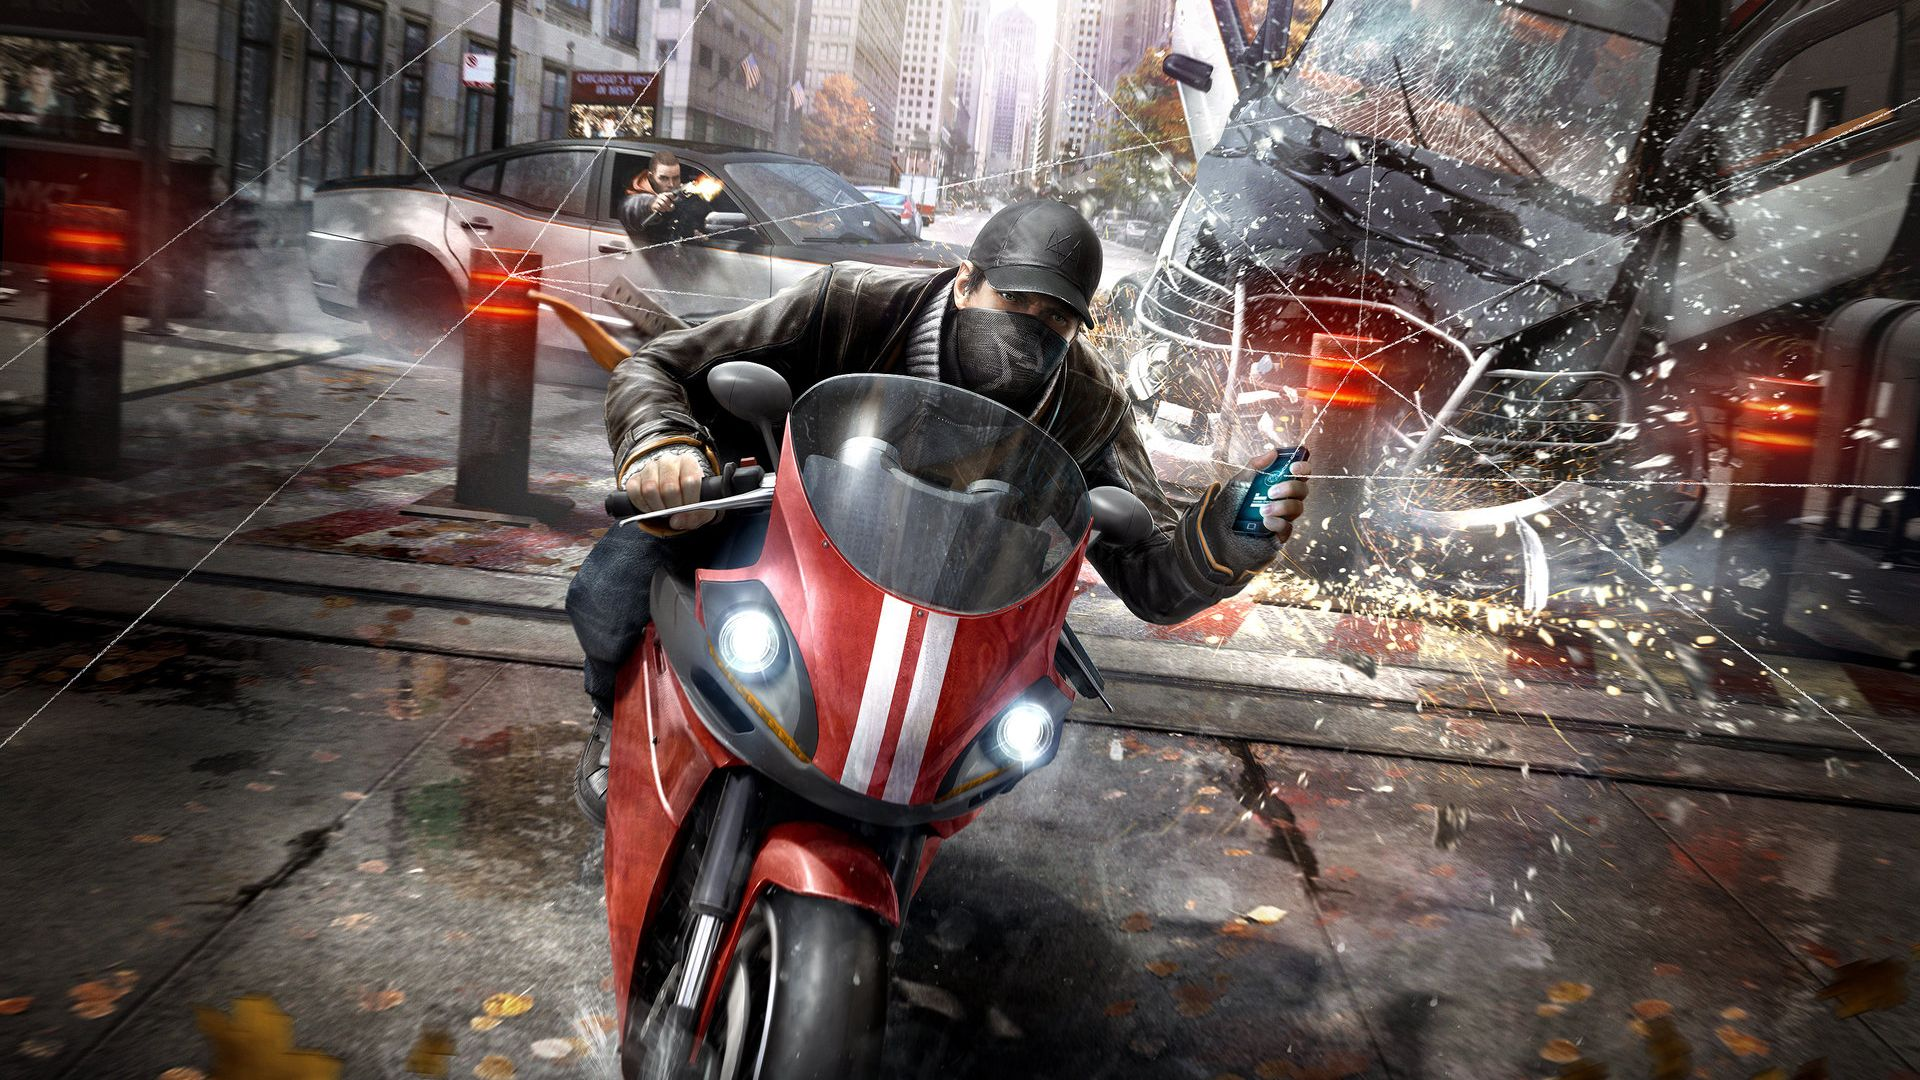 watch dogs 2014 hd - cool wallpapers download | wallpaper